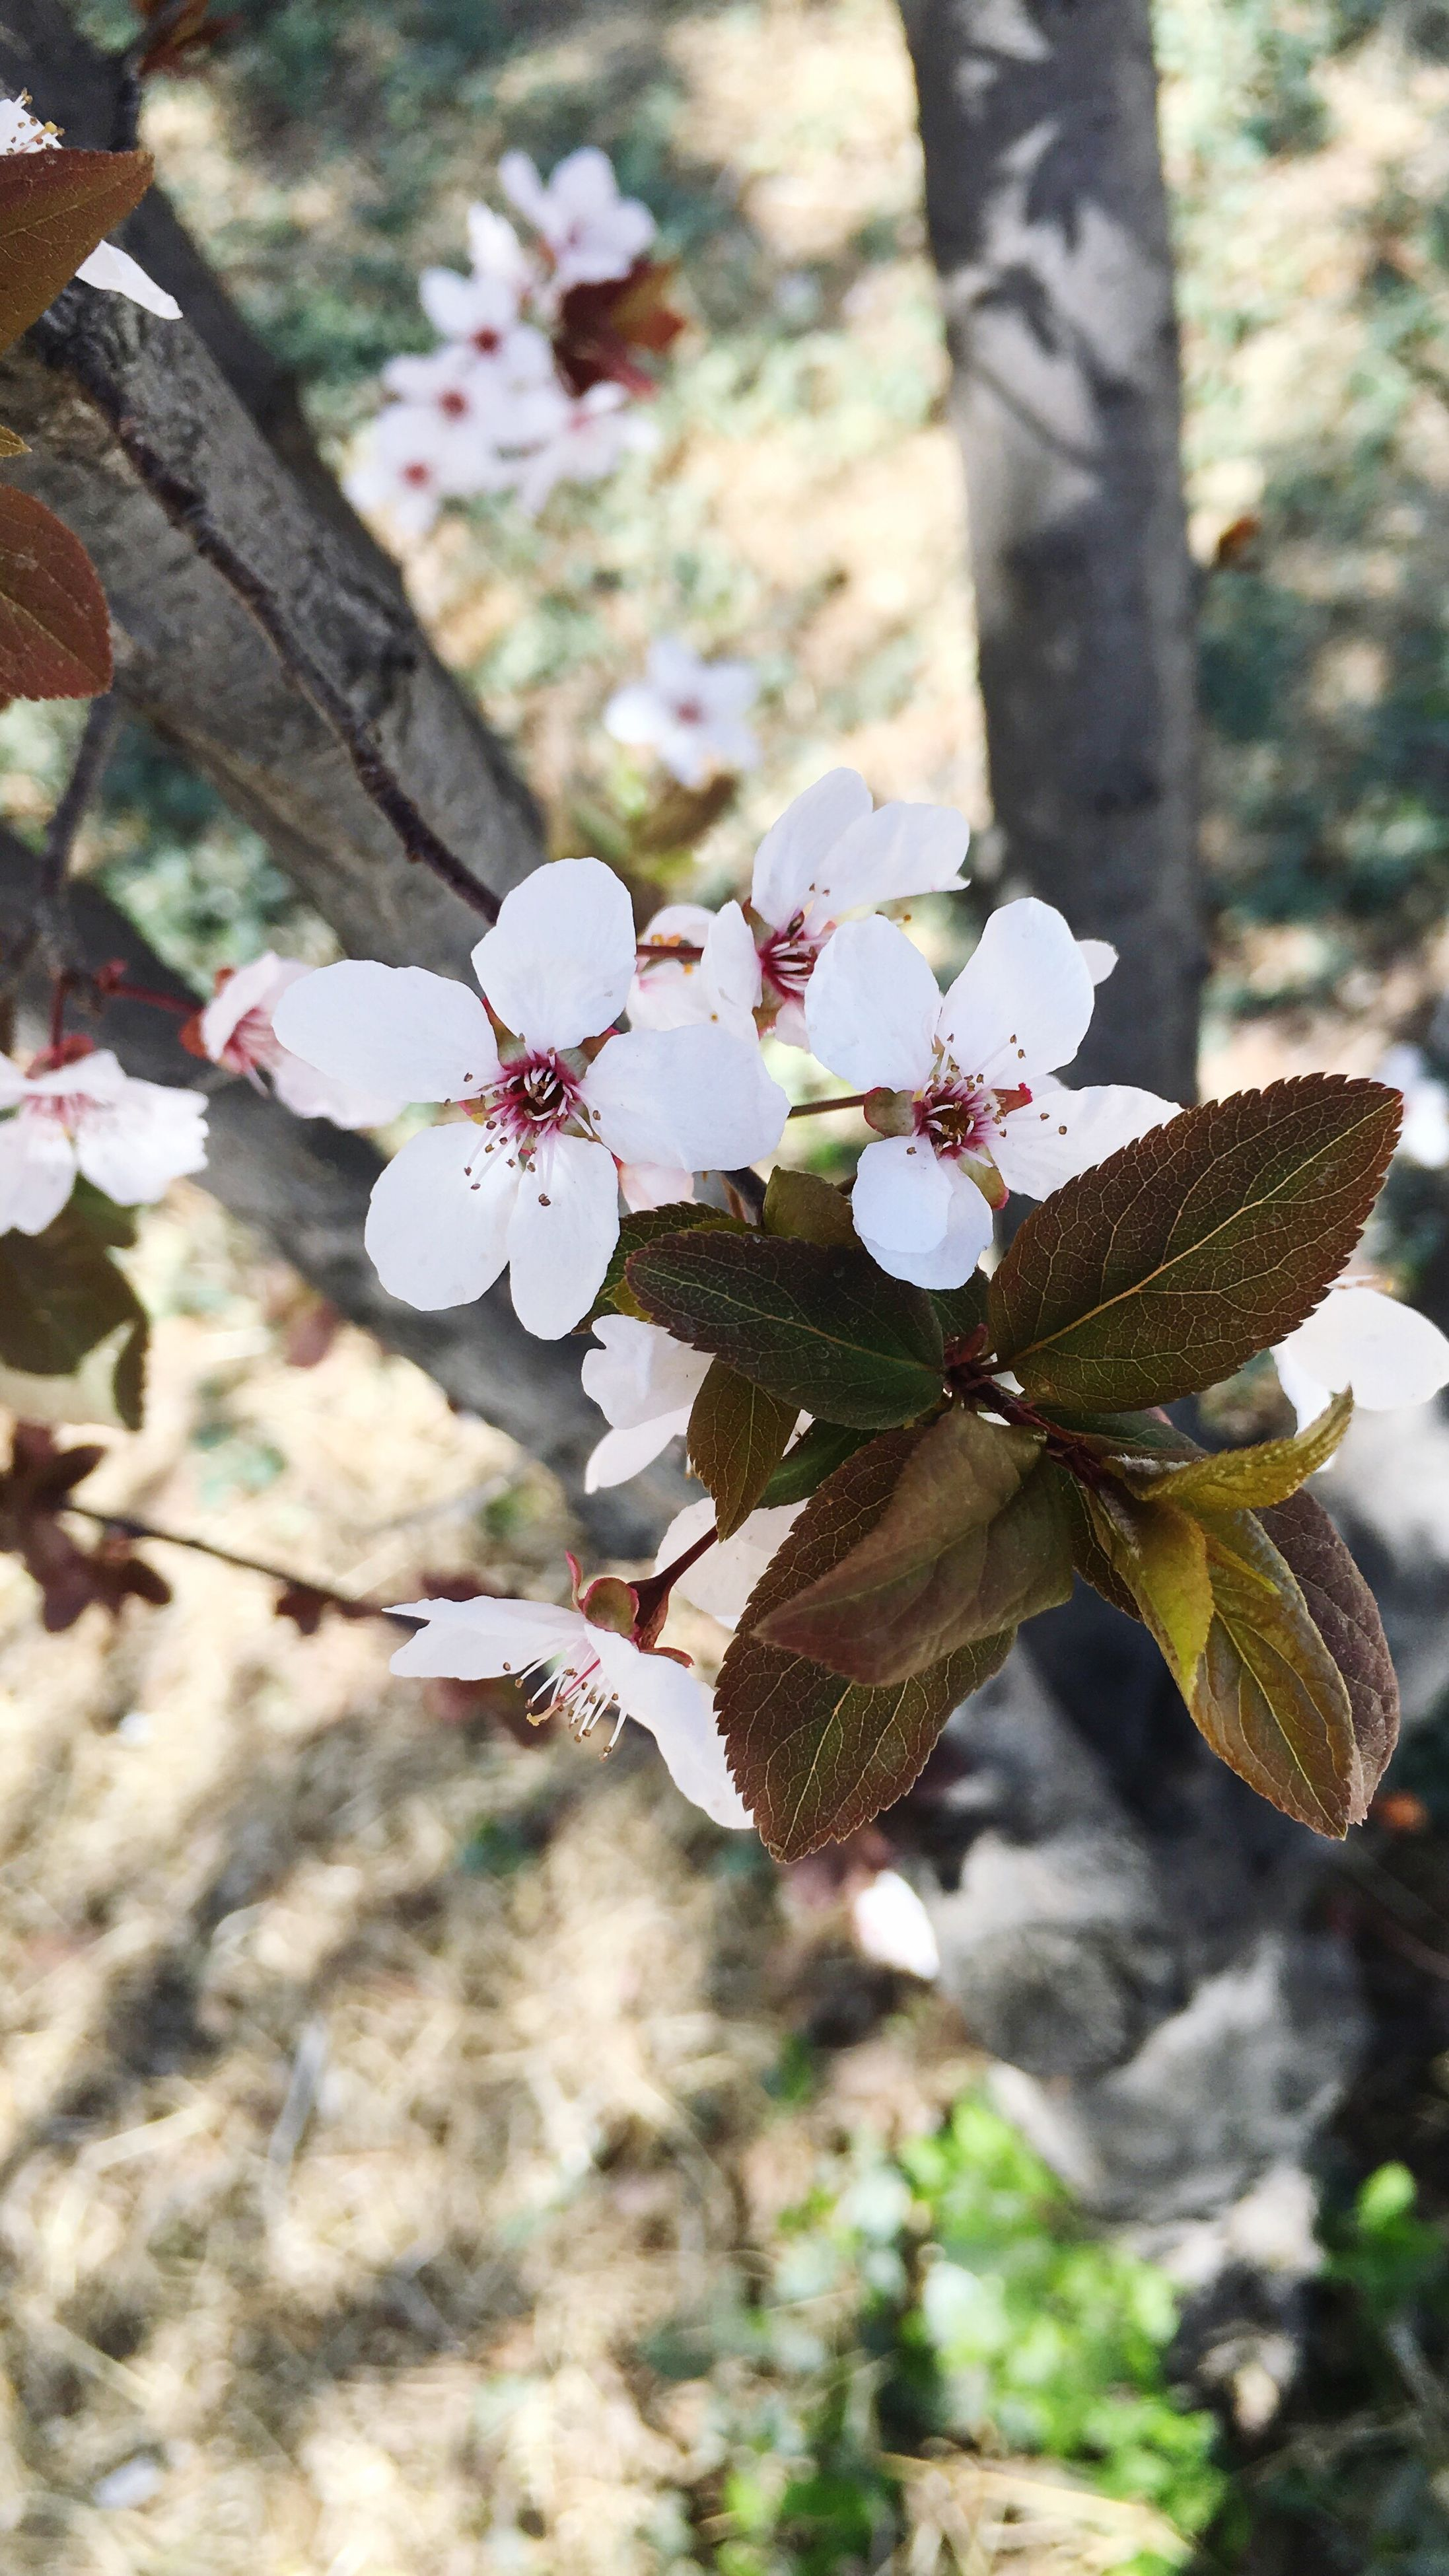 flower, freshness, growth, fragility, petal, branch, beauty in nature, nature, tree, focus on foreground, blossom, close-up, in bloom, blooming, cherry blossom, flower head, white color, springtime, twig, botany